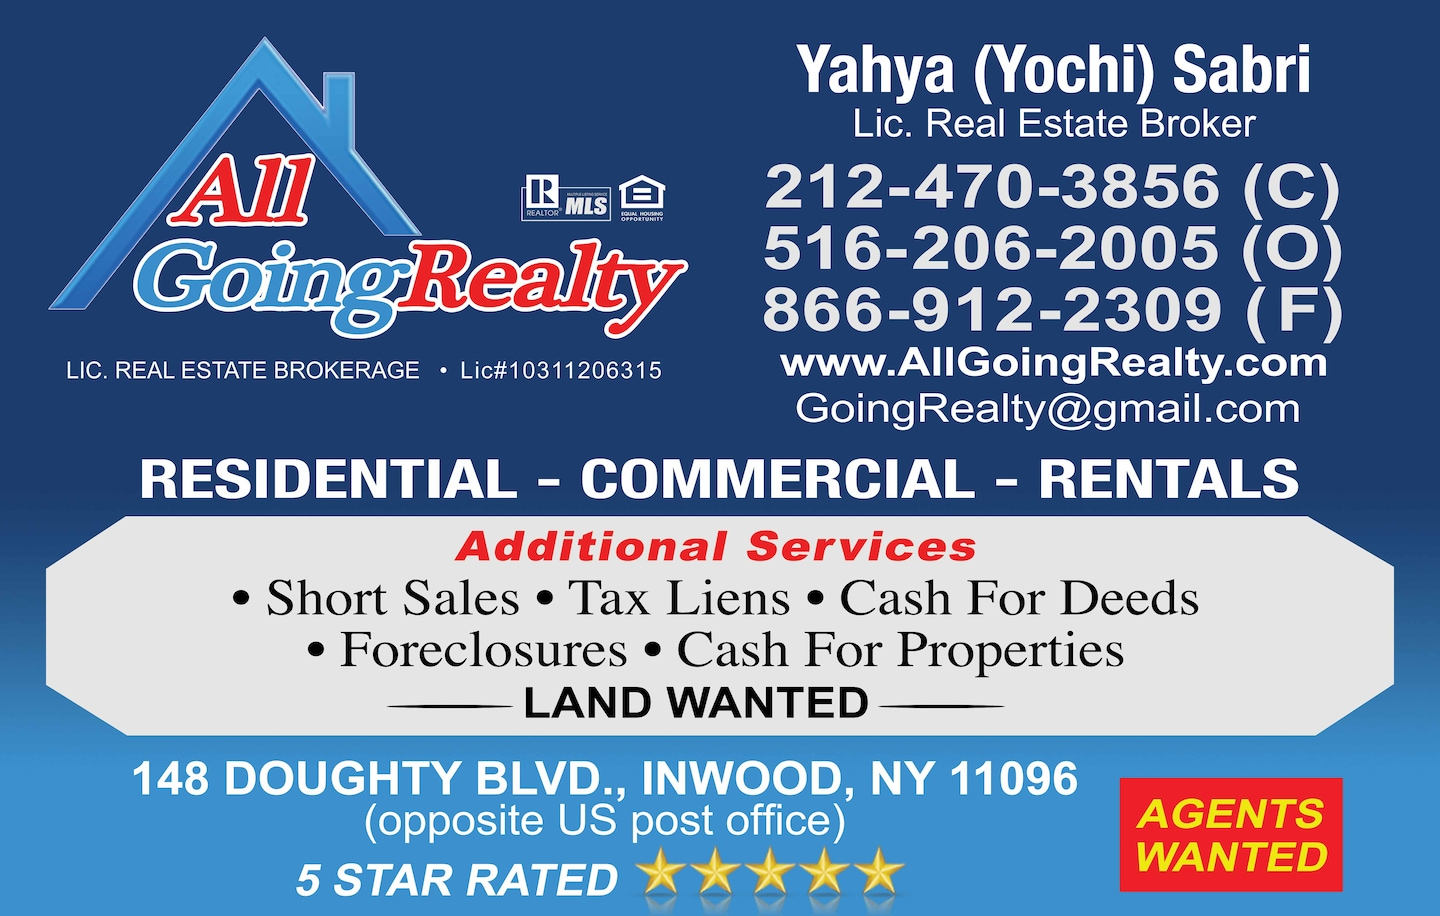 All Going Realty LLC